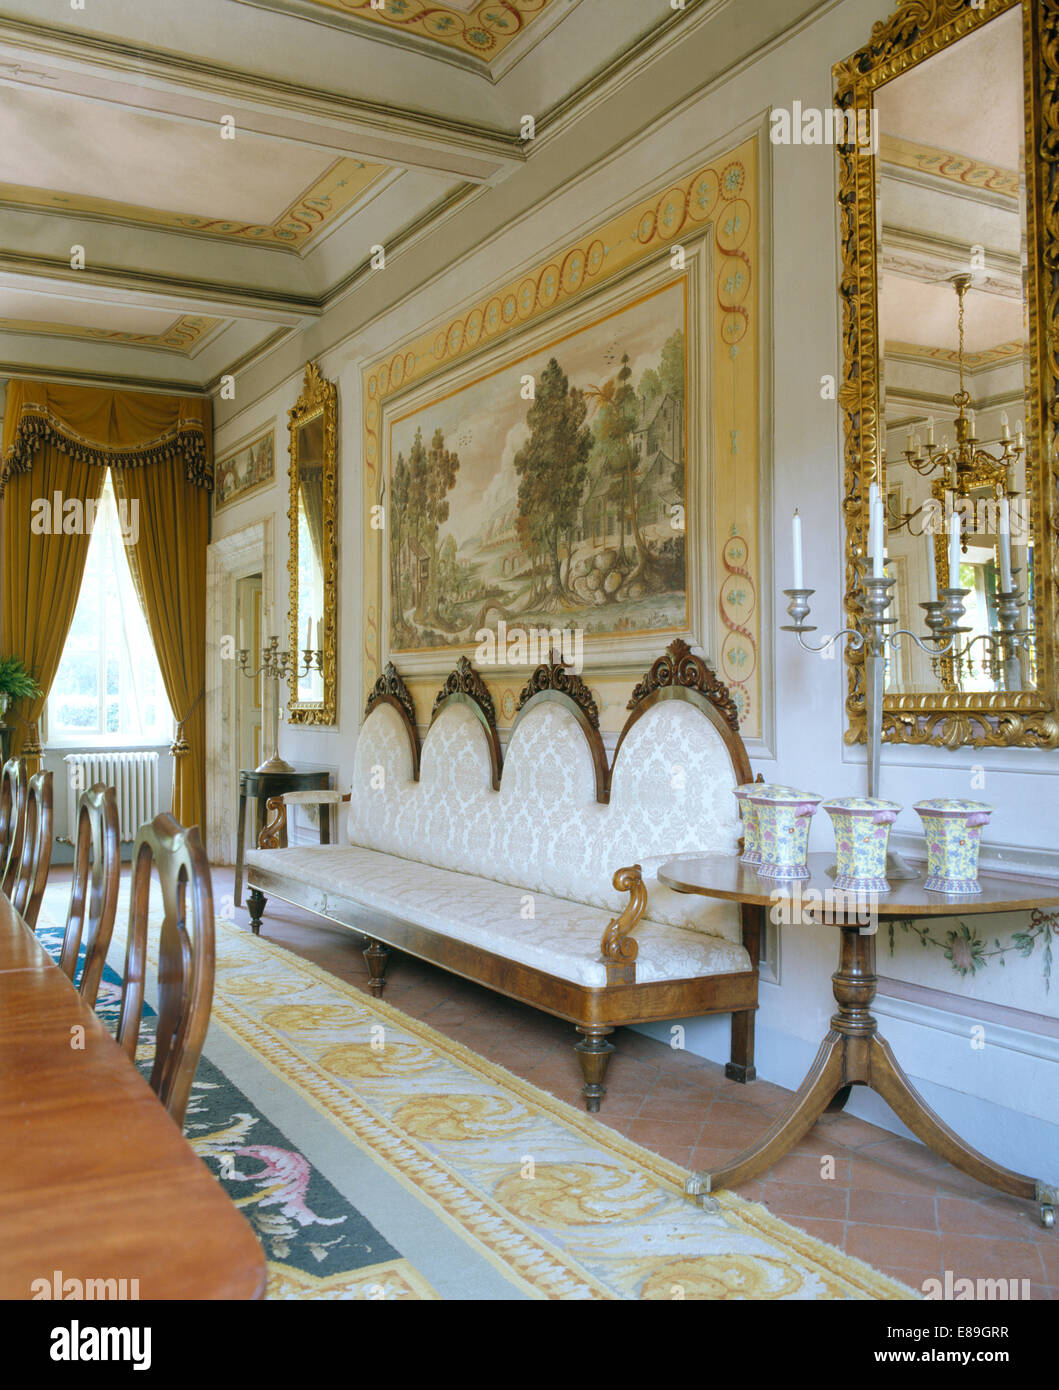 Large mural on wall above antique italian sofa in opulent tuscan large mural on wall above antique italian sofa in opulent tuscan dining room with antique mirror and small table amipublicfo Image collections